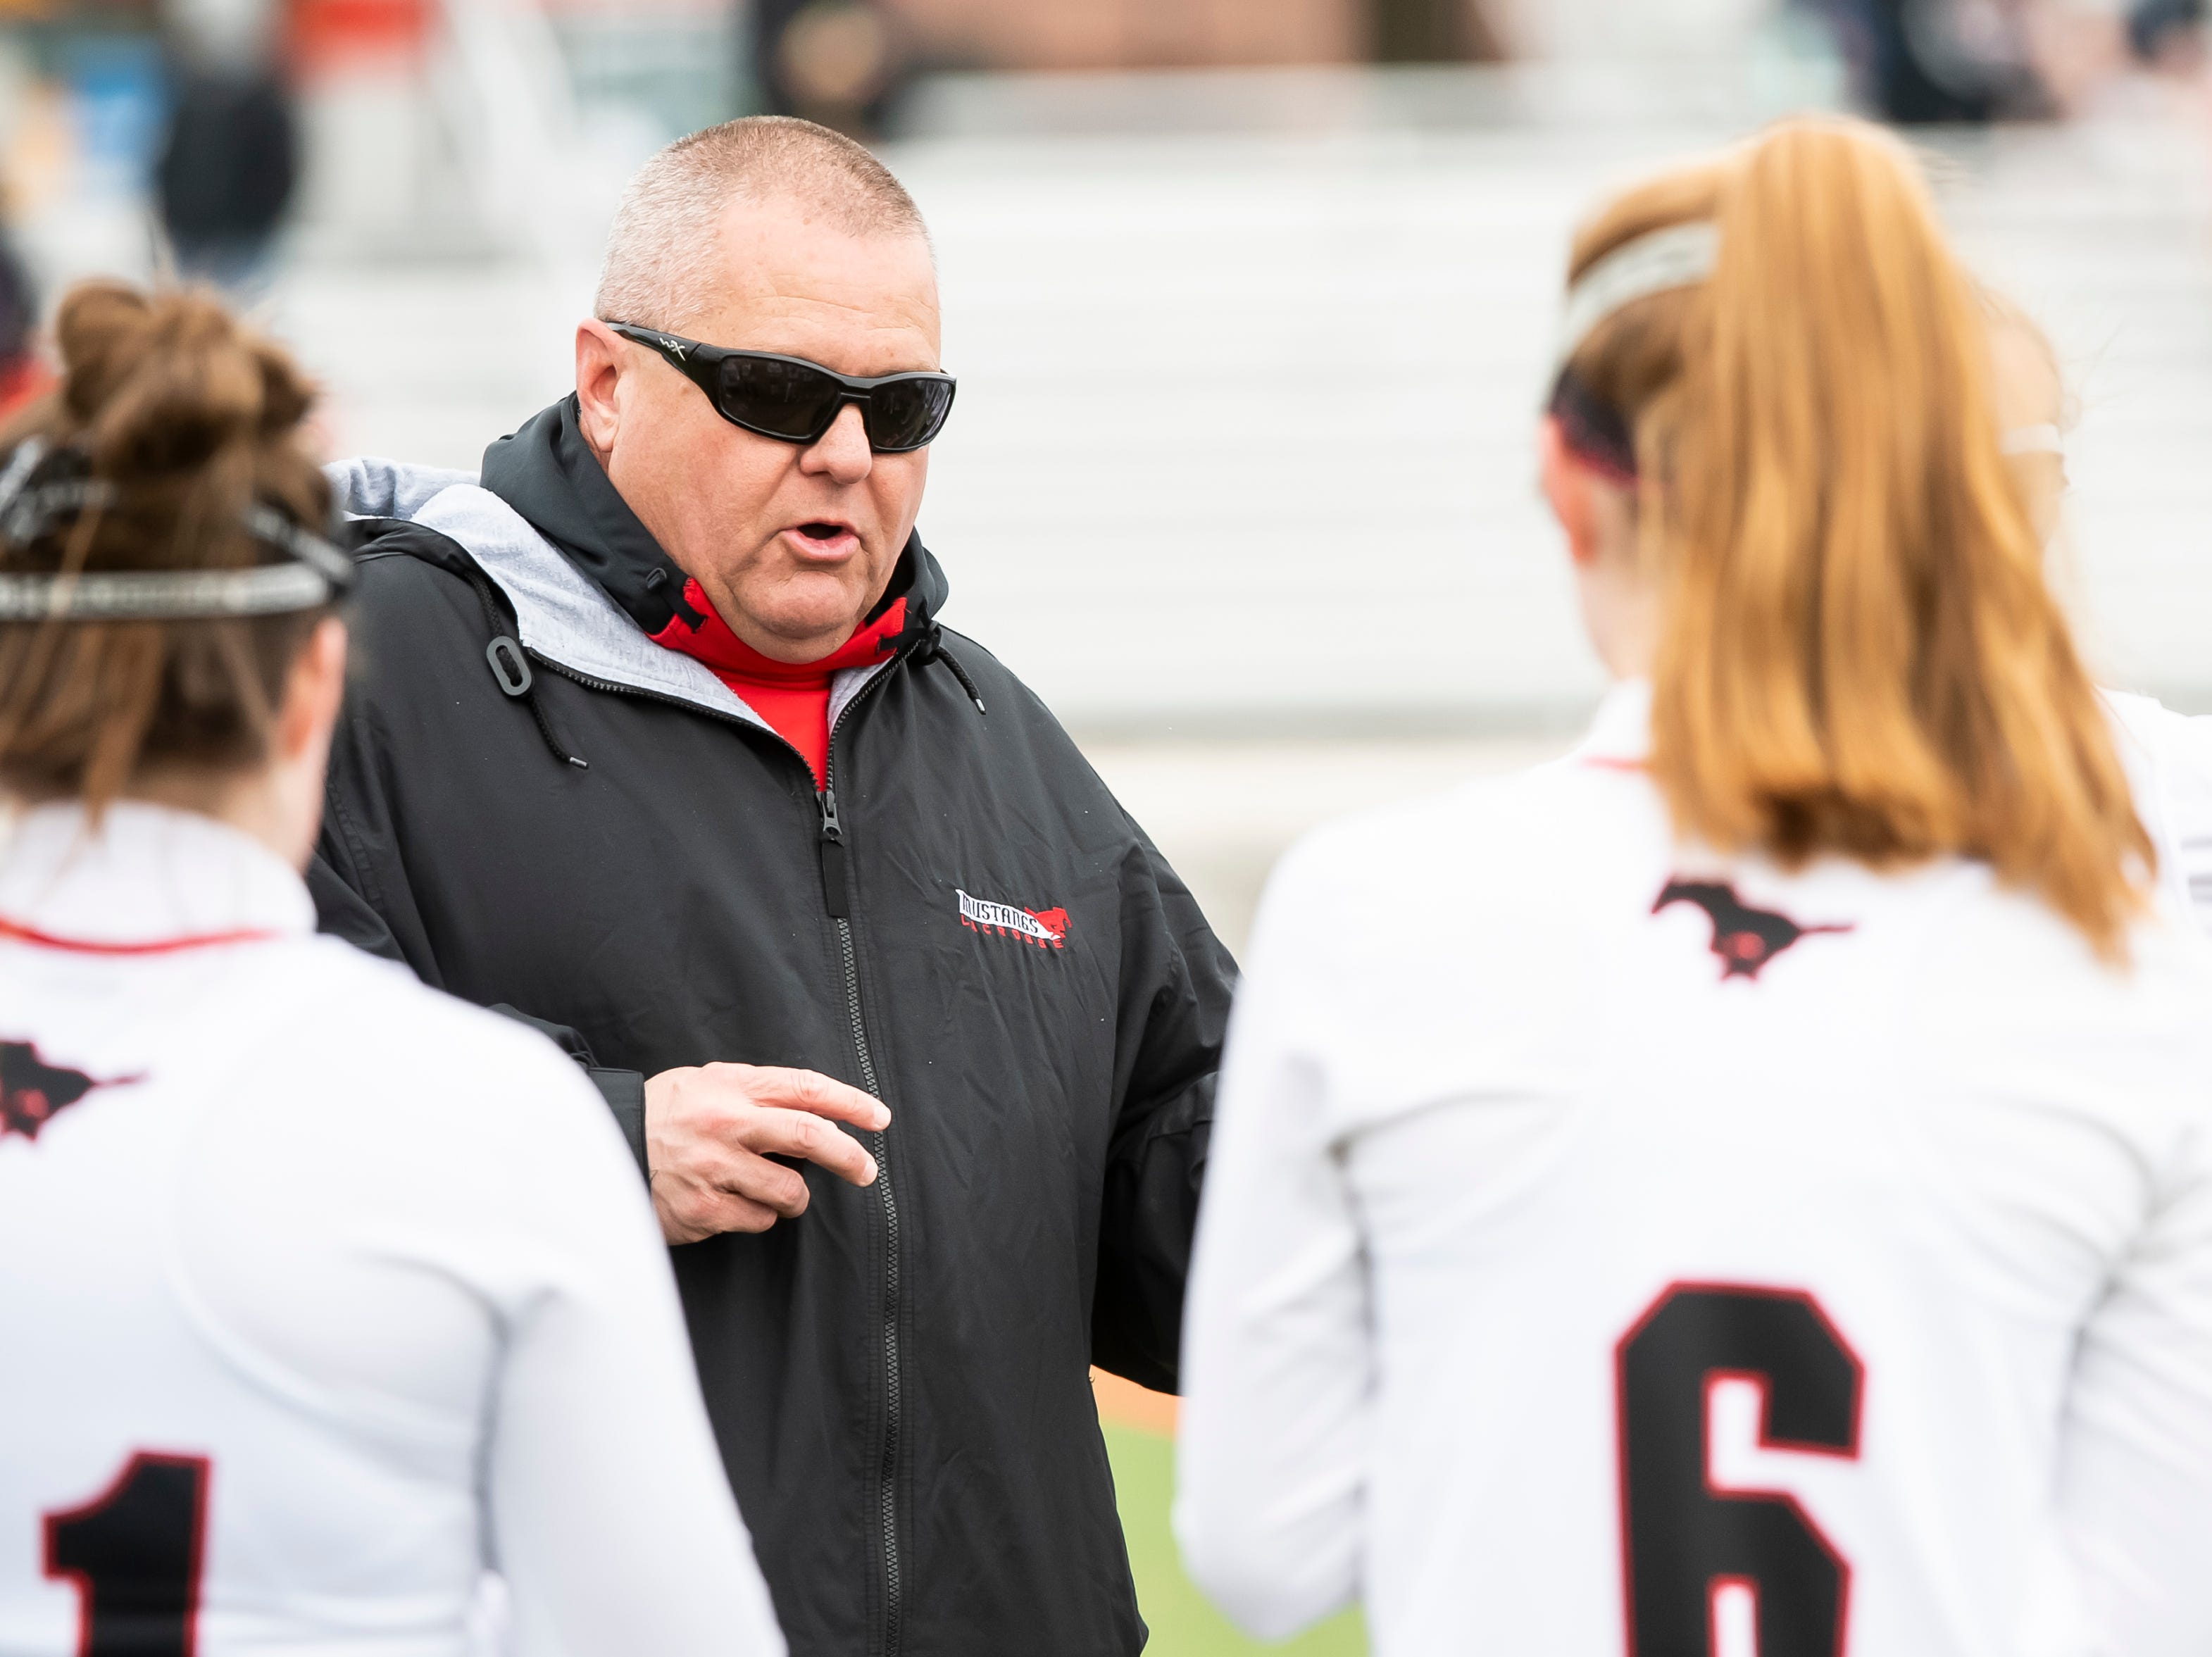 South Western girls lacrosse head coach Randy Kavanaugh speaks with his team during halftime in a YAIAA lacrosse game against York Catholic in Hanover on Tuesday, April 2, 2019. South Western fell 19-7.